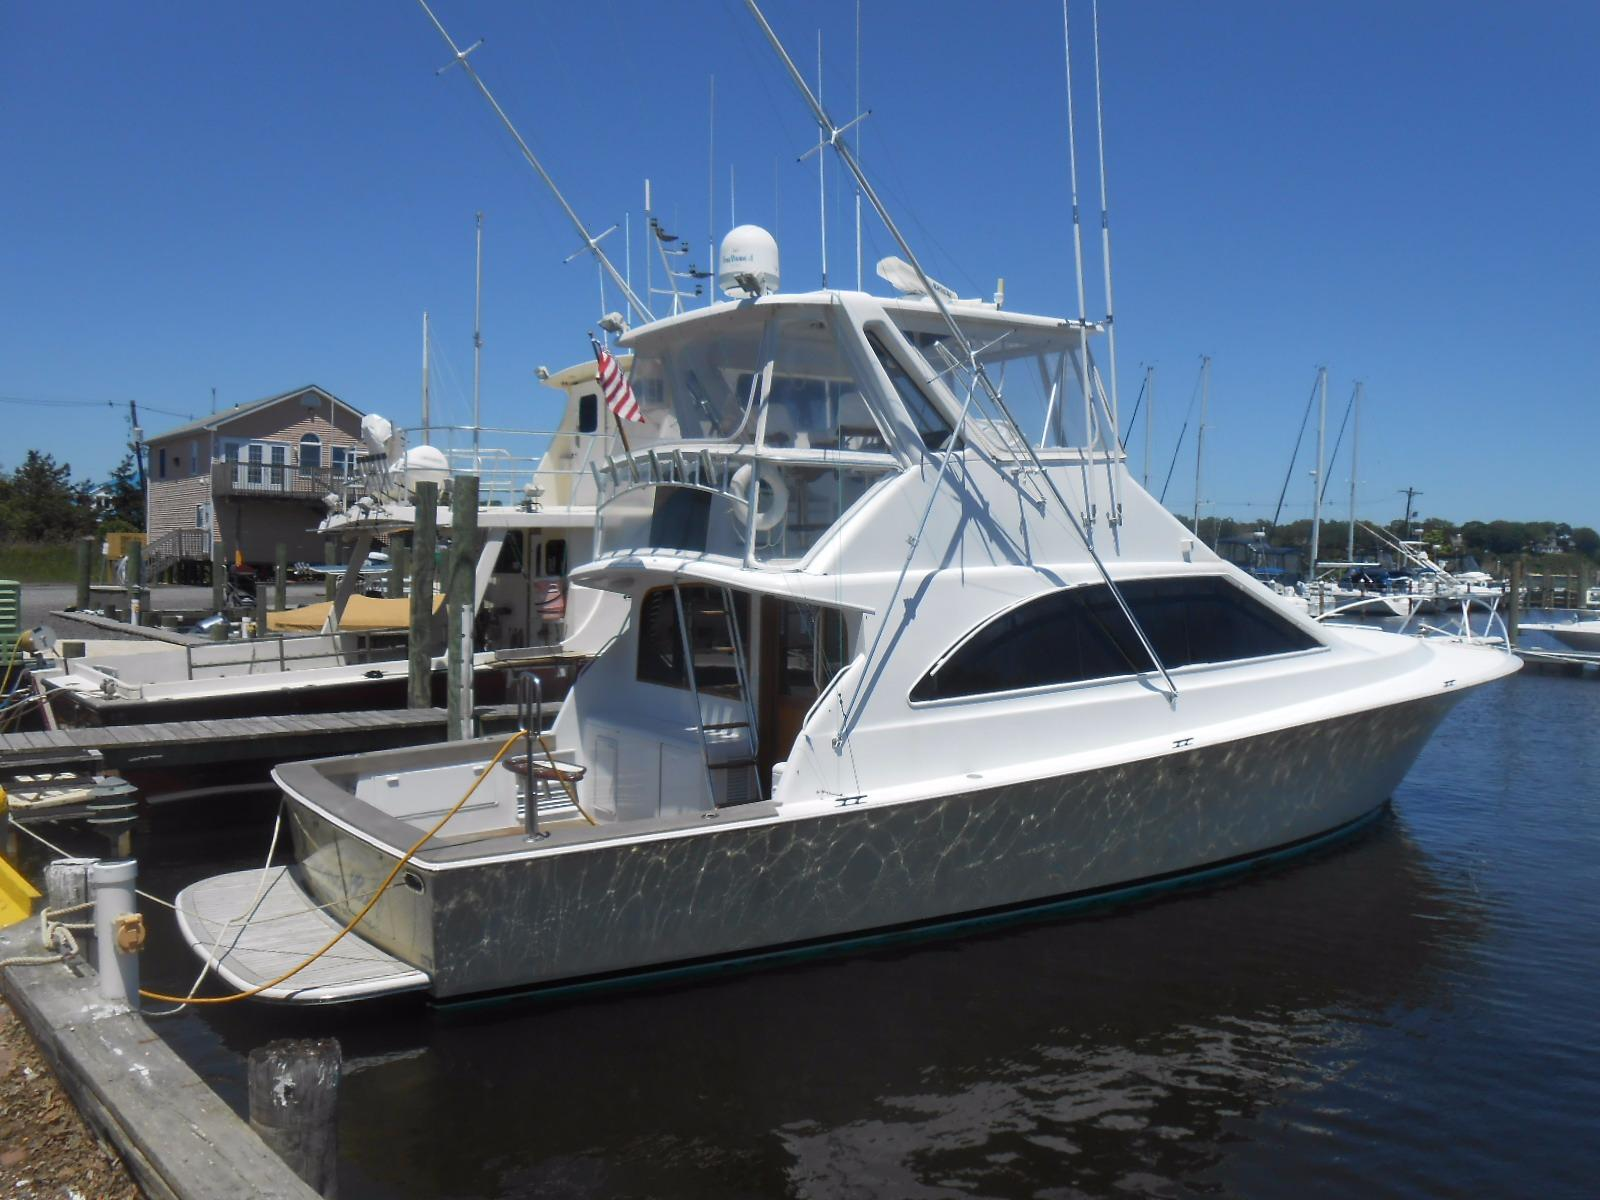 48 ocean yachts 1995 for sale in pine beach new jersey for Ocean yachts 48 motor yacht for sale